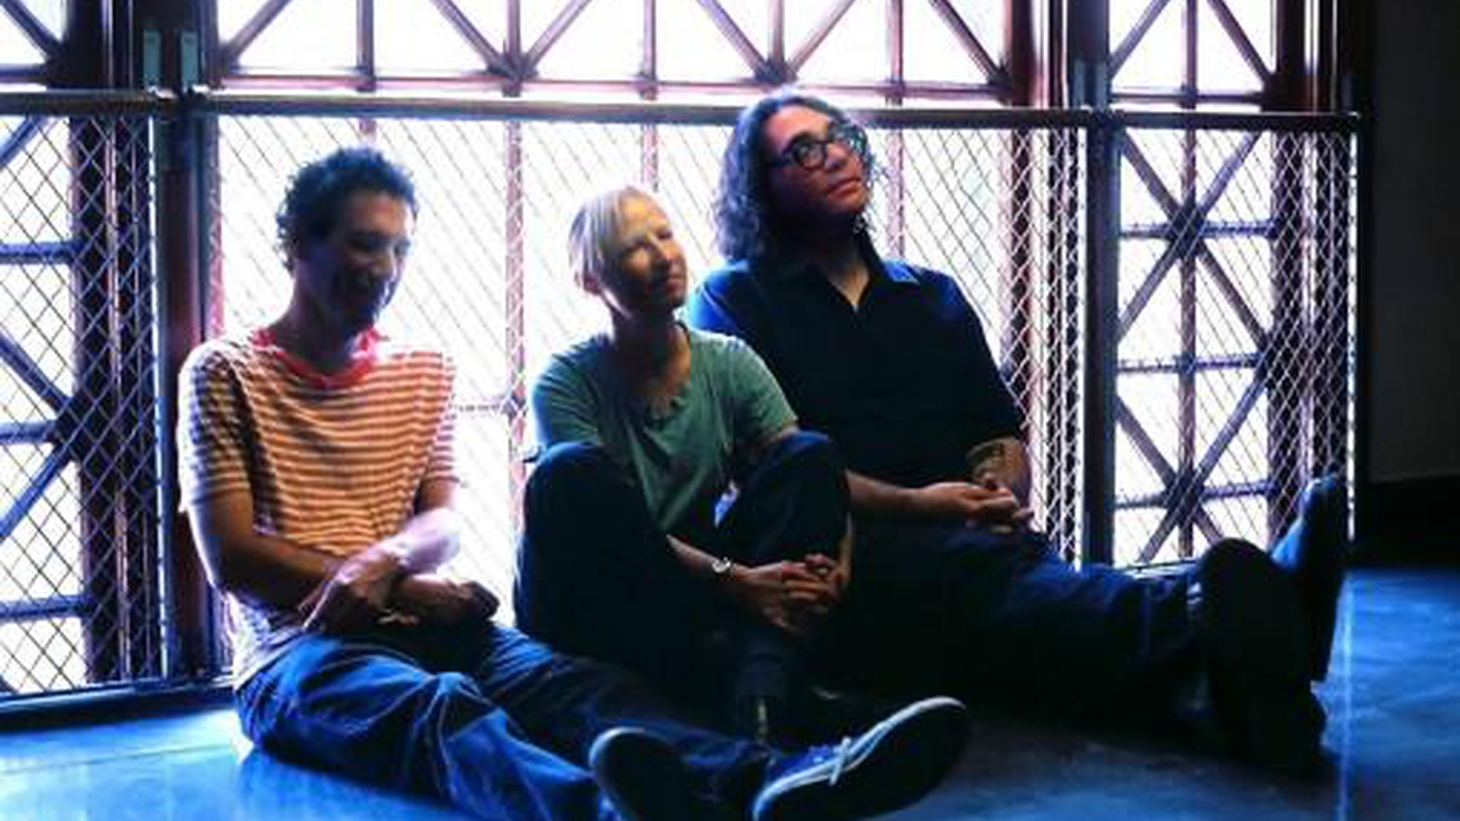 New Jersey trio Yo La Tengo have been making music together for a long time and their 13th recording is easily among their best.